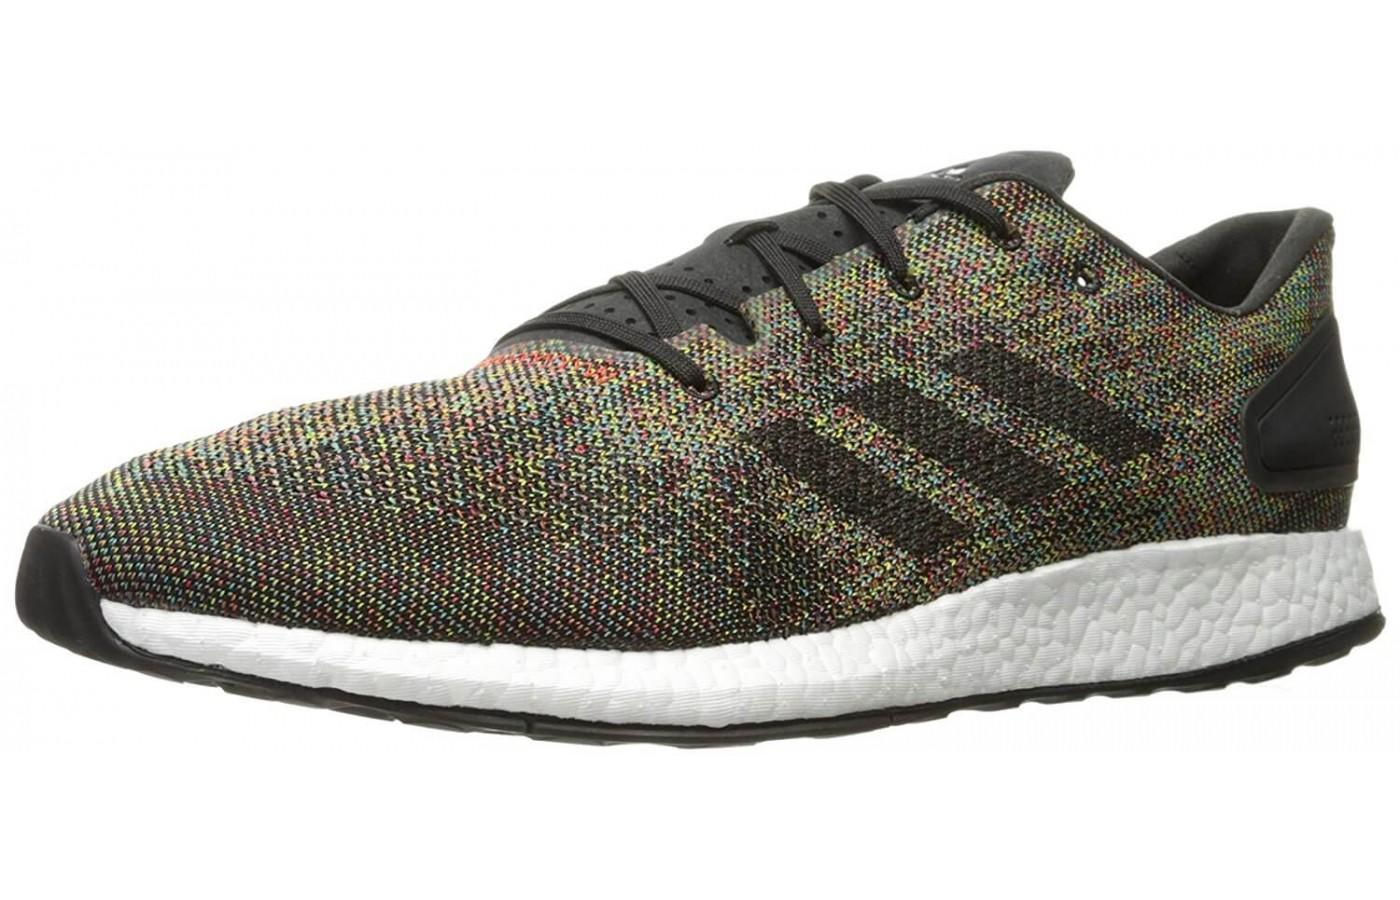 82e9b58eb Adidas PureBOOST DPR LTD - To Buy or Not in May 2019